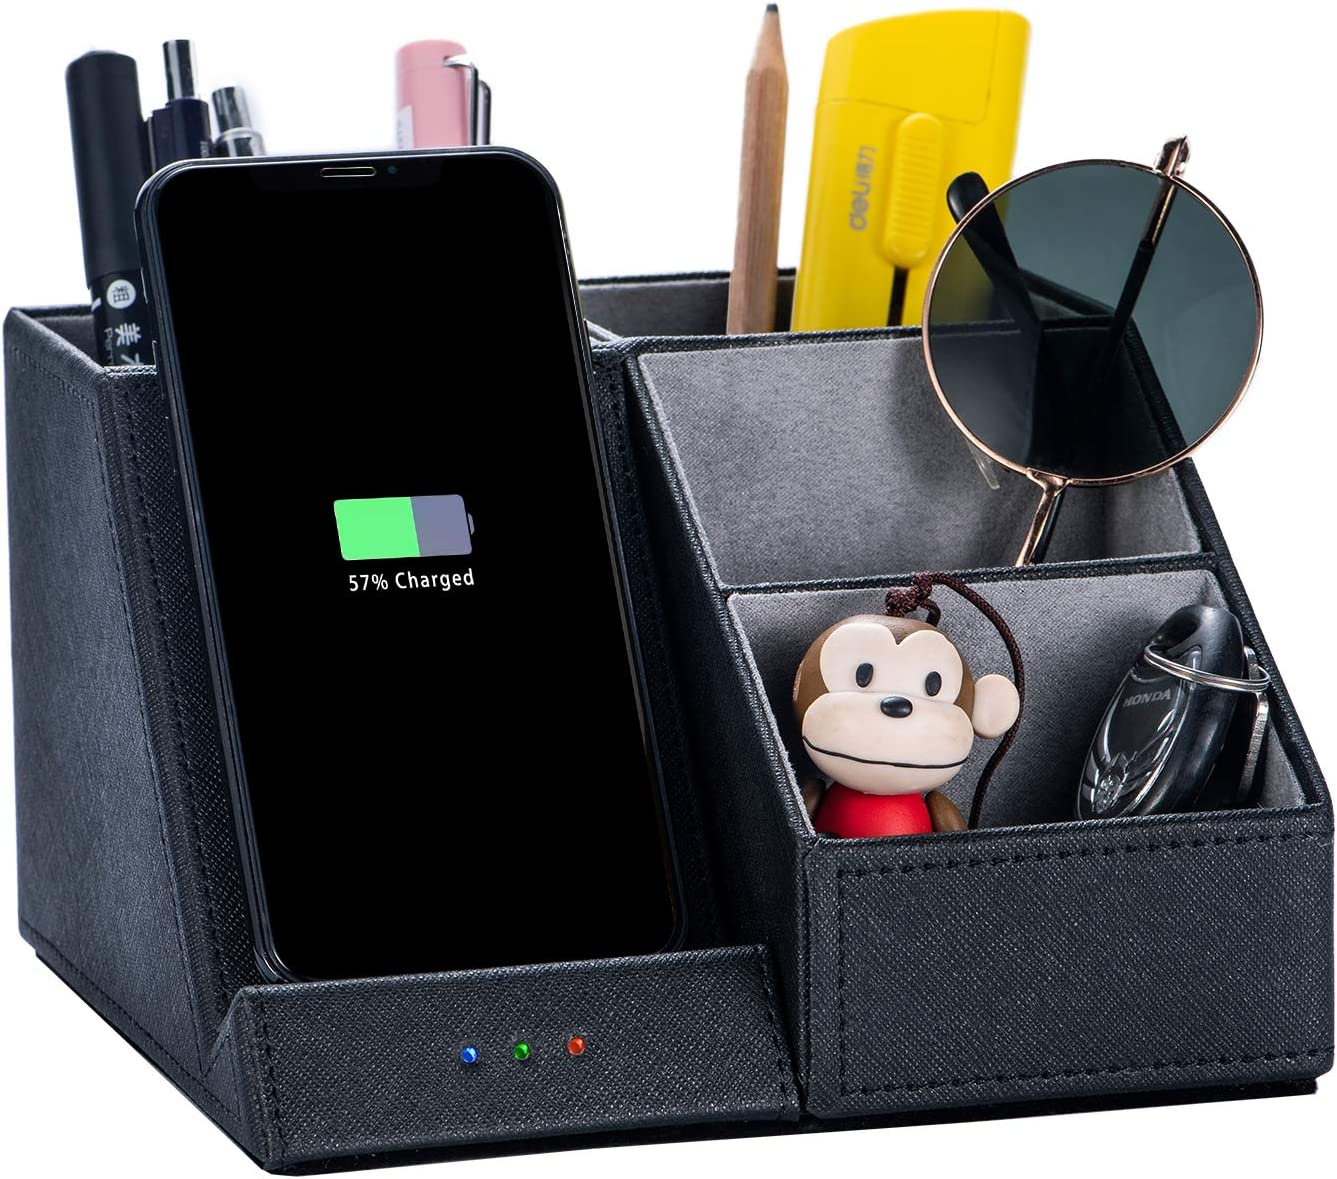 Super beauty product restock quality top! Cheap mail order sales Wireless Charger Desk Organizer,Wireless Multi-Functio